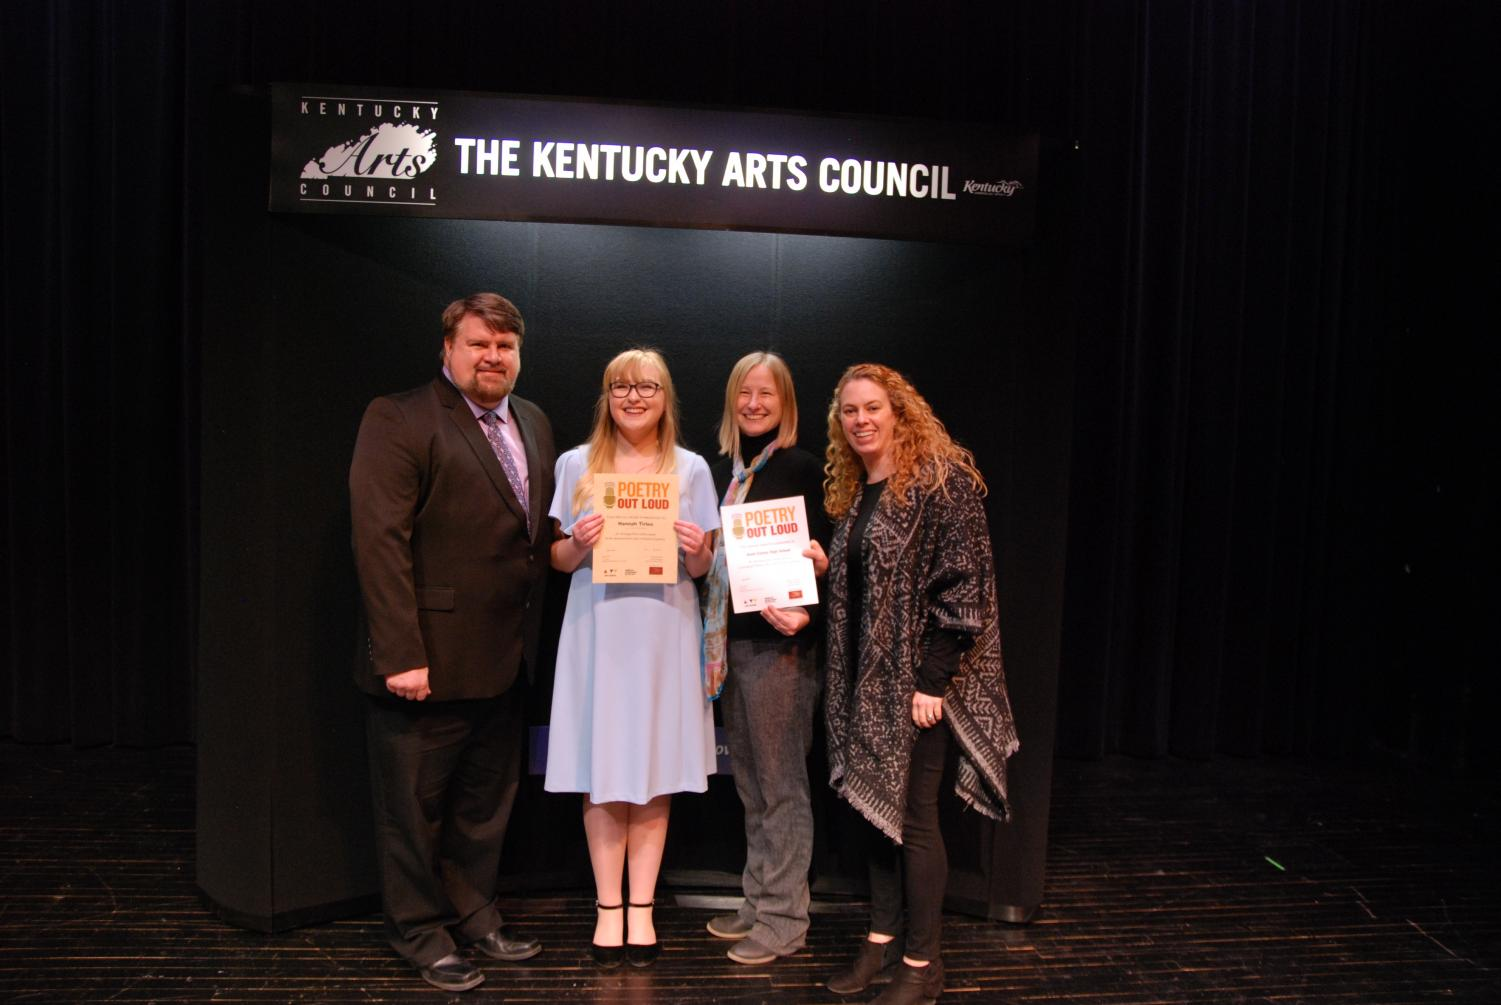 Hannah Tirlea recently was named the runner-up in the state Poetry Out Loud competition.  Judges for the contest included well-known KY authors Frank X Walker and Frederick Smock.